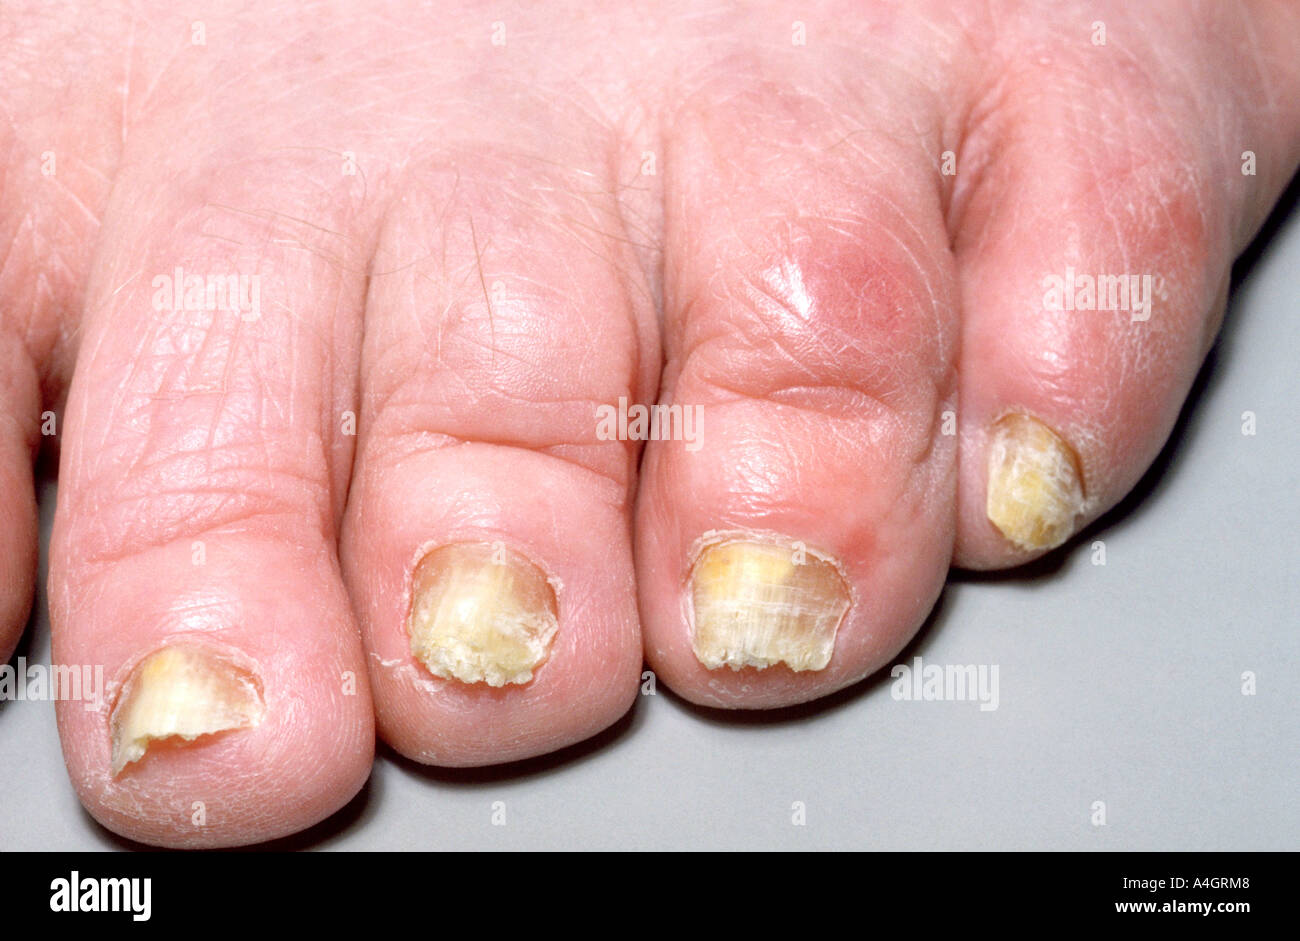 Thickened Toenails Stock Photos & Thickened Toenails Stock Images ...